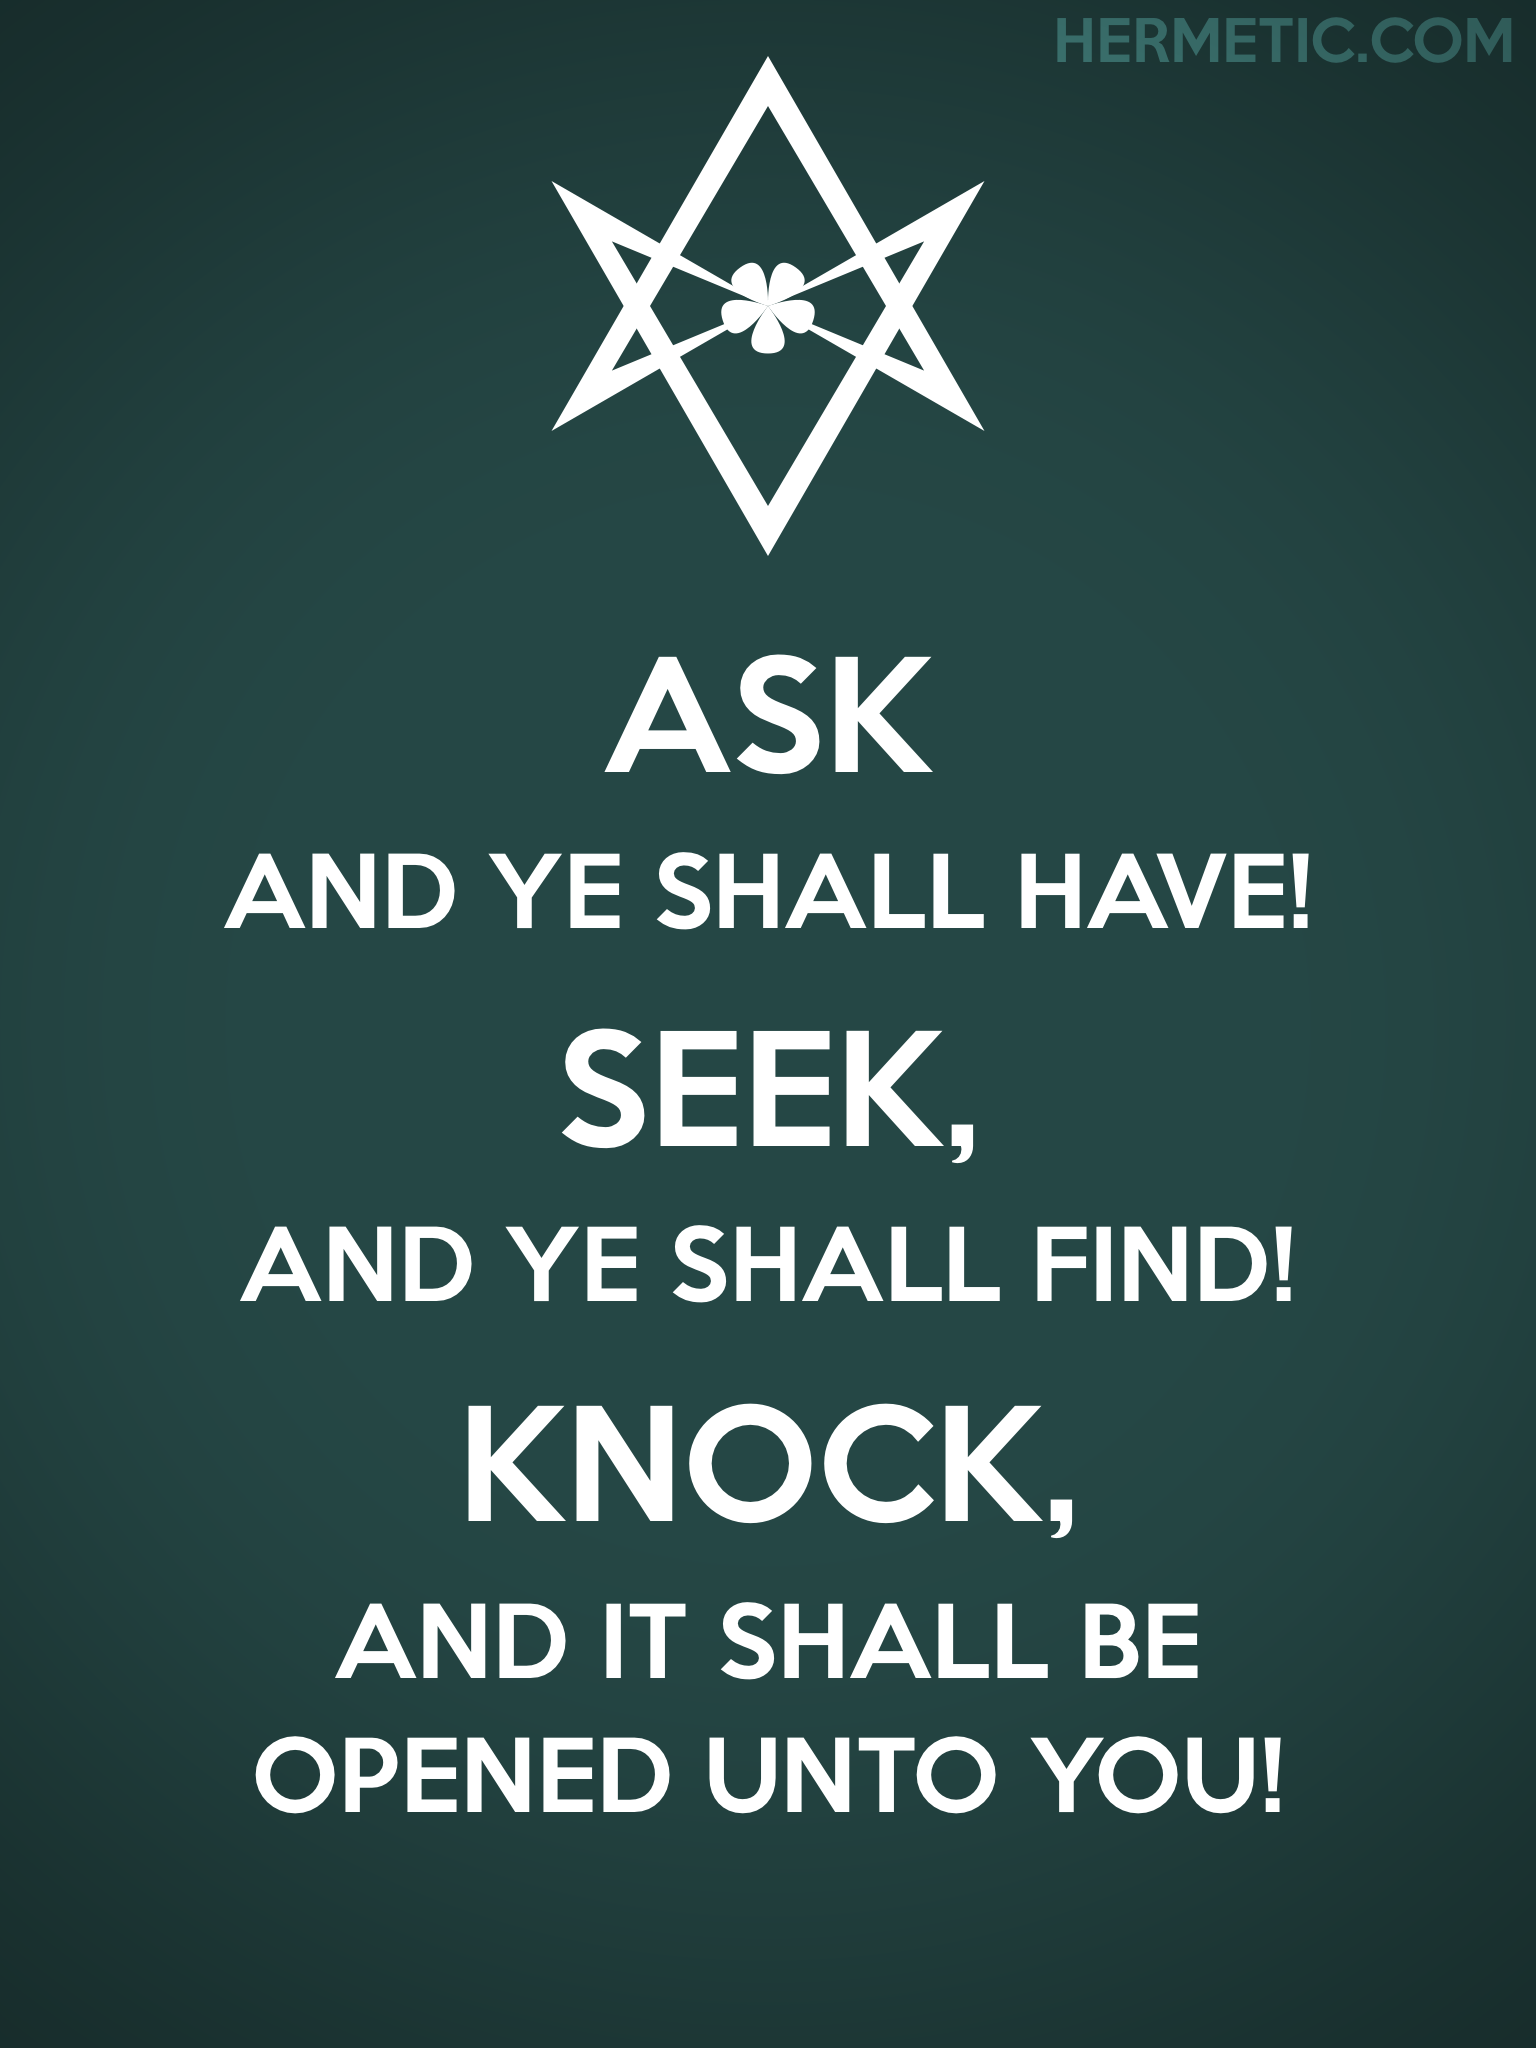 Unicursal ASK SEEK KNOCK Propaganda Poster from Hermetic Library Office of the Ministry of Information